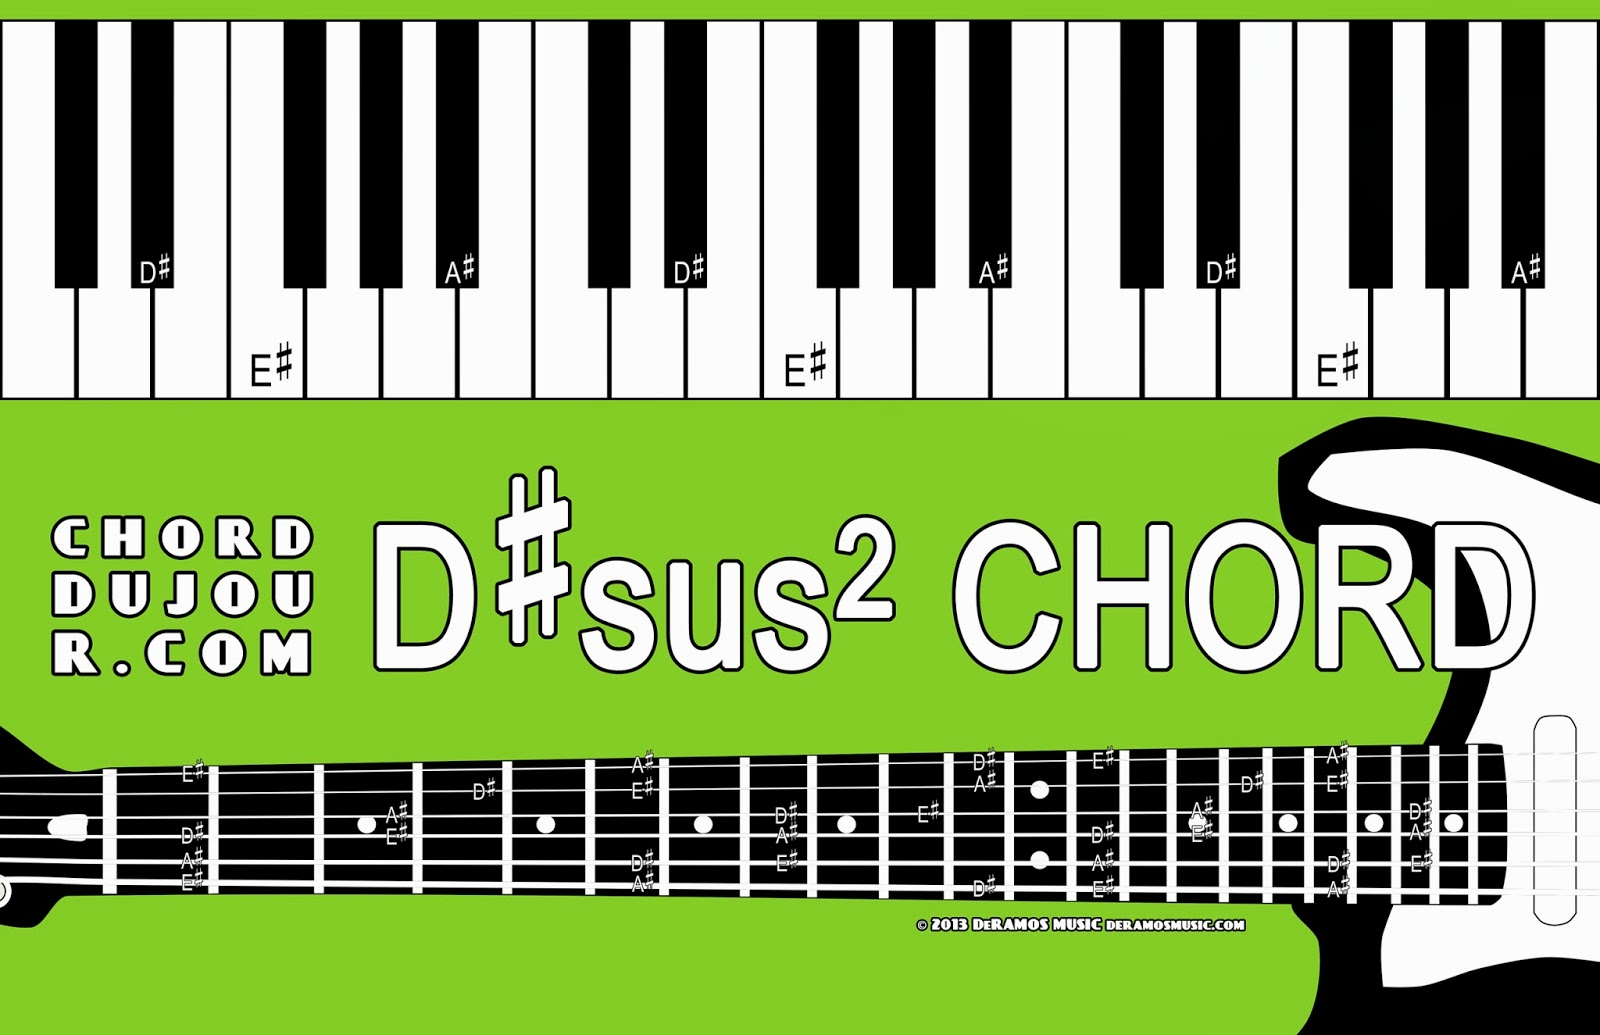 Chord du jour dictionary dsus2 chord dictionary dsus2 chord hexwebz Choice Image